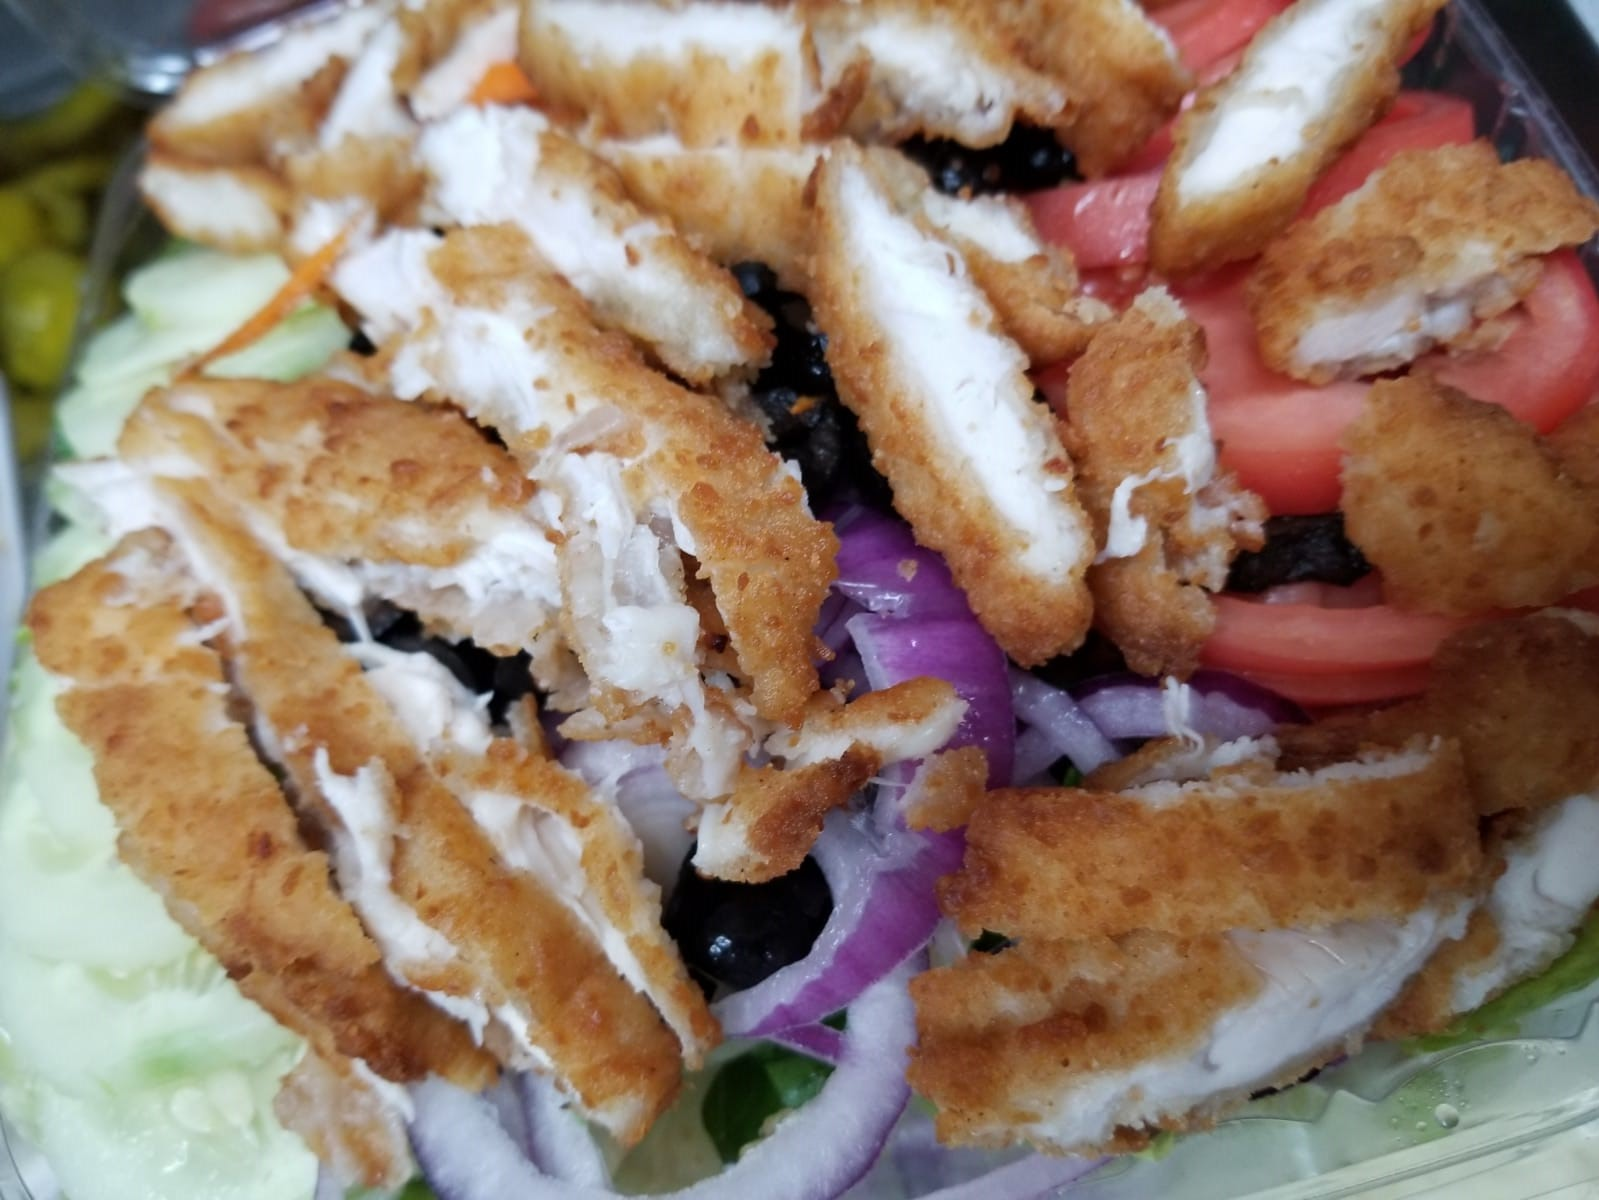 house salad with sliced breaded chicken on top